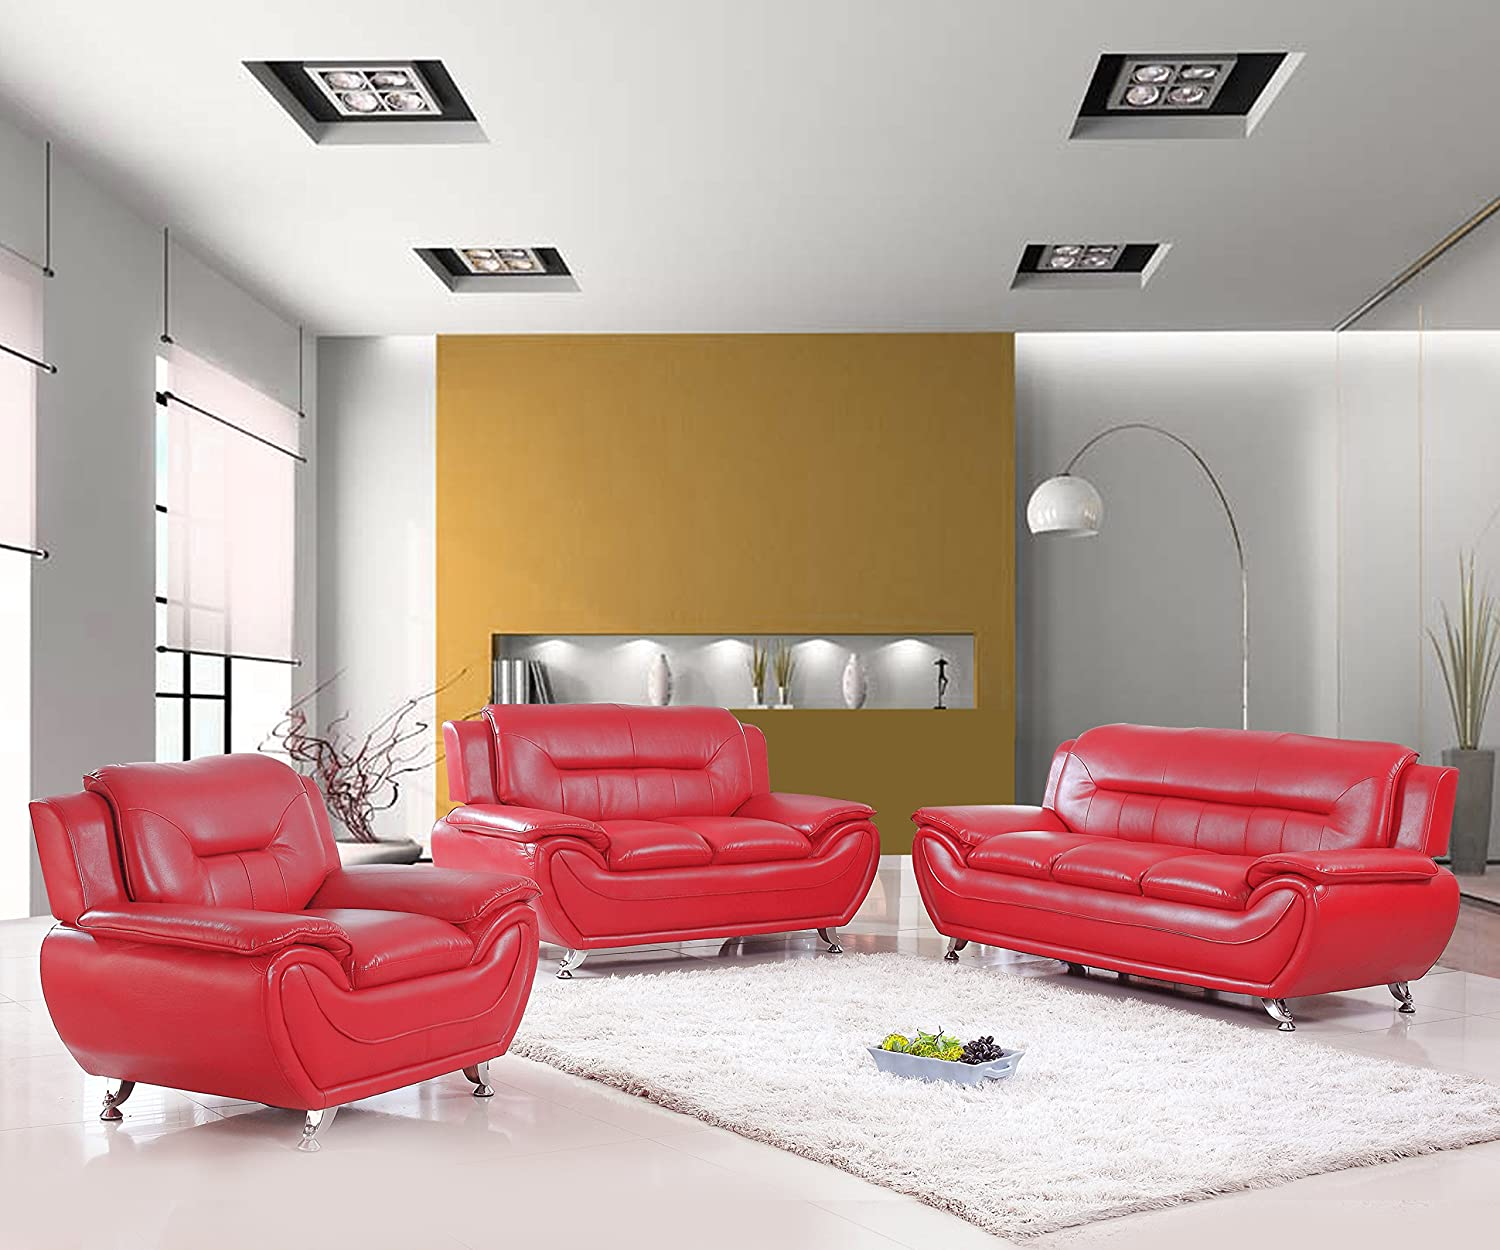 U s livings anya modern living room polyurethane leather sofa loveseat and chair set 3 piece red